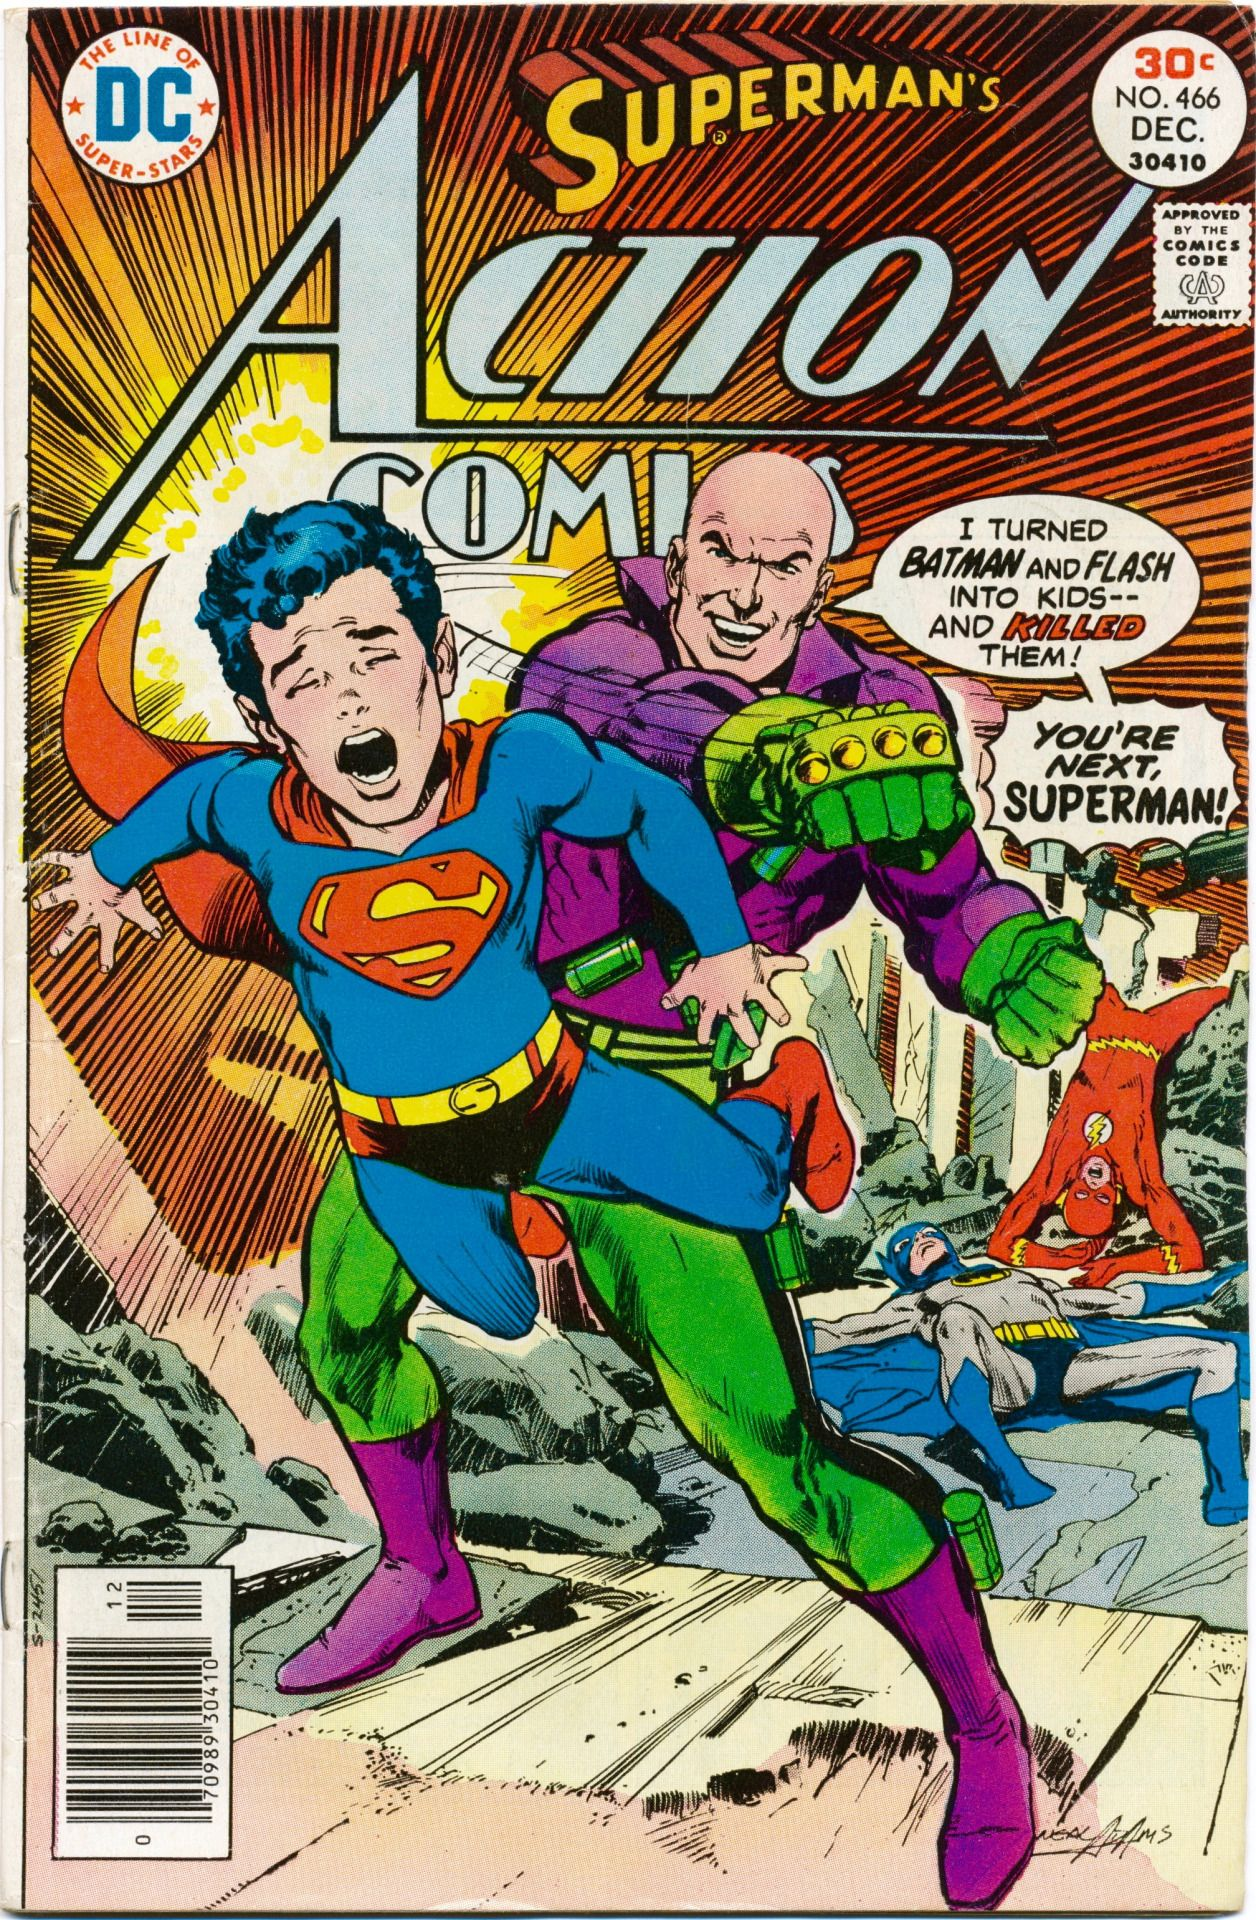 So glad to learn that one of my all-time favorite covers is also a fave of artist Neal Adams. Interview from 13thdimension.com: Switching to Superman, actually Action Comics #466. If you look at this cover, you could believe that unconsciously, Neal...